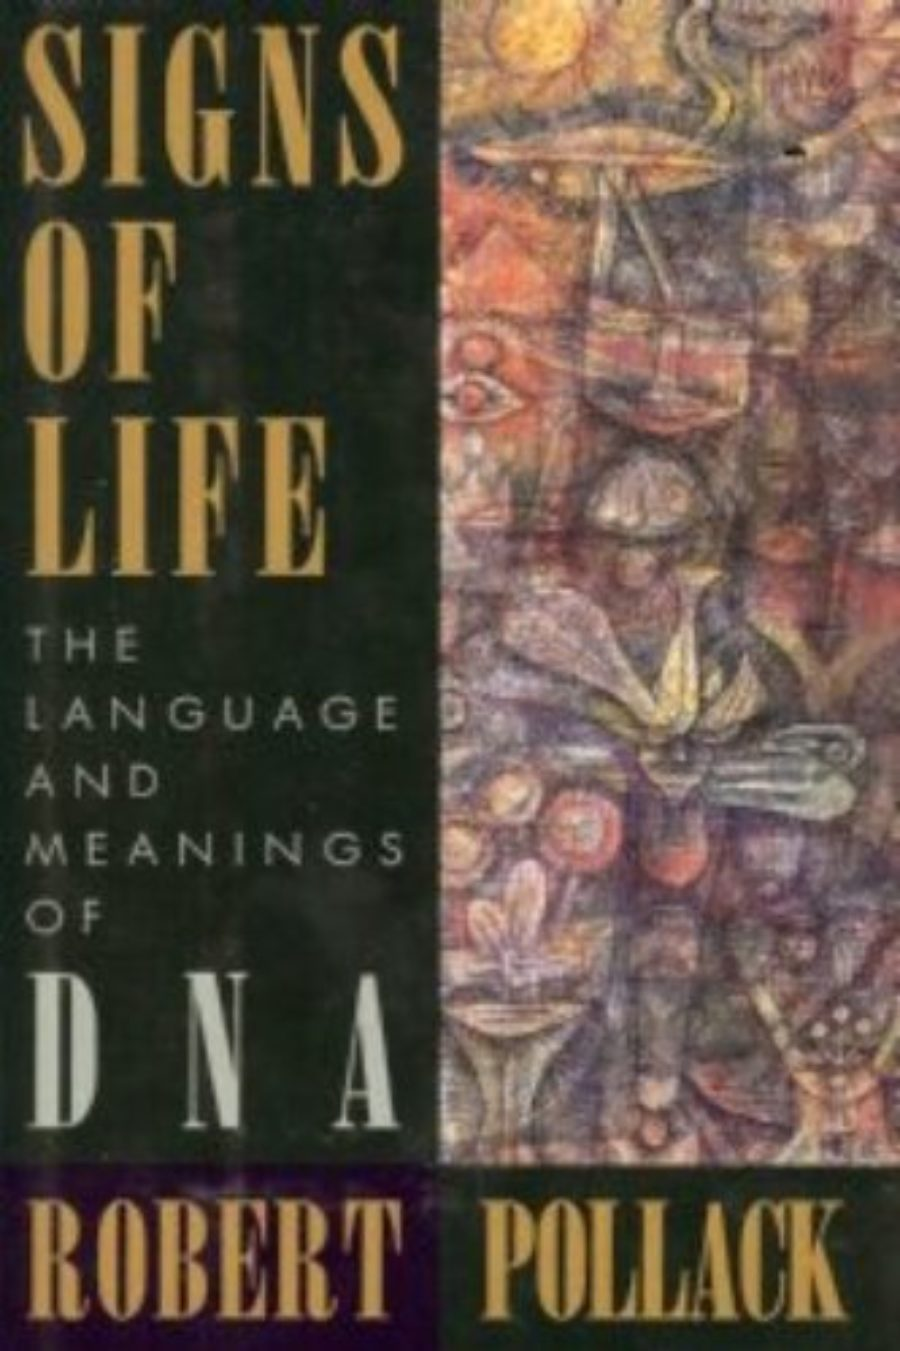 Cover of Signs Of Life: The Language and Meaning of DNA